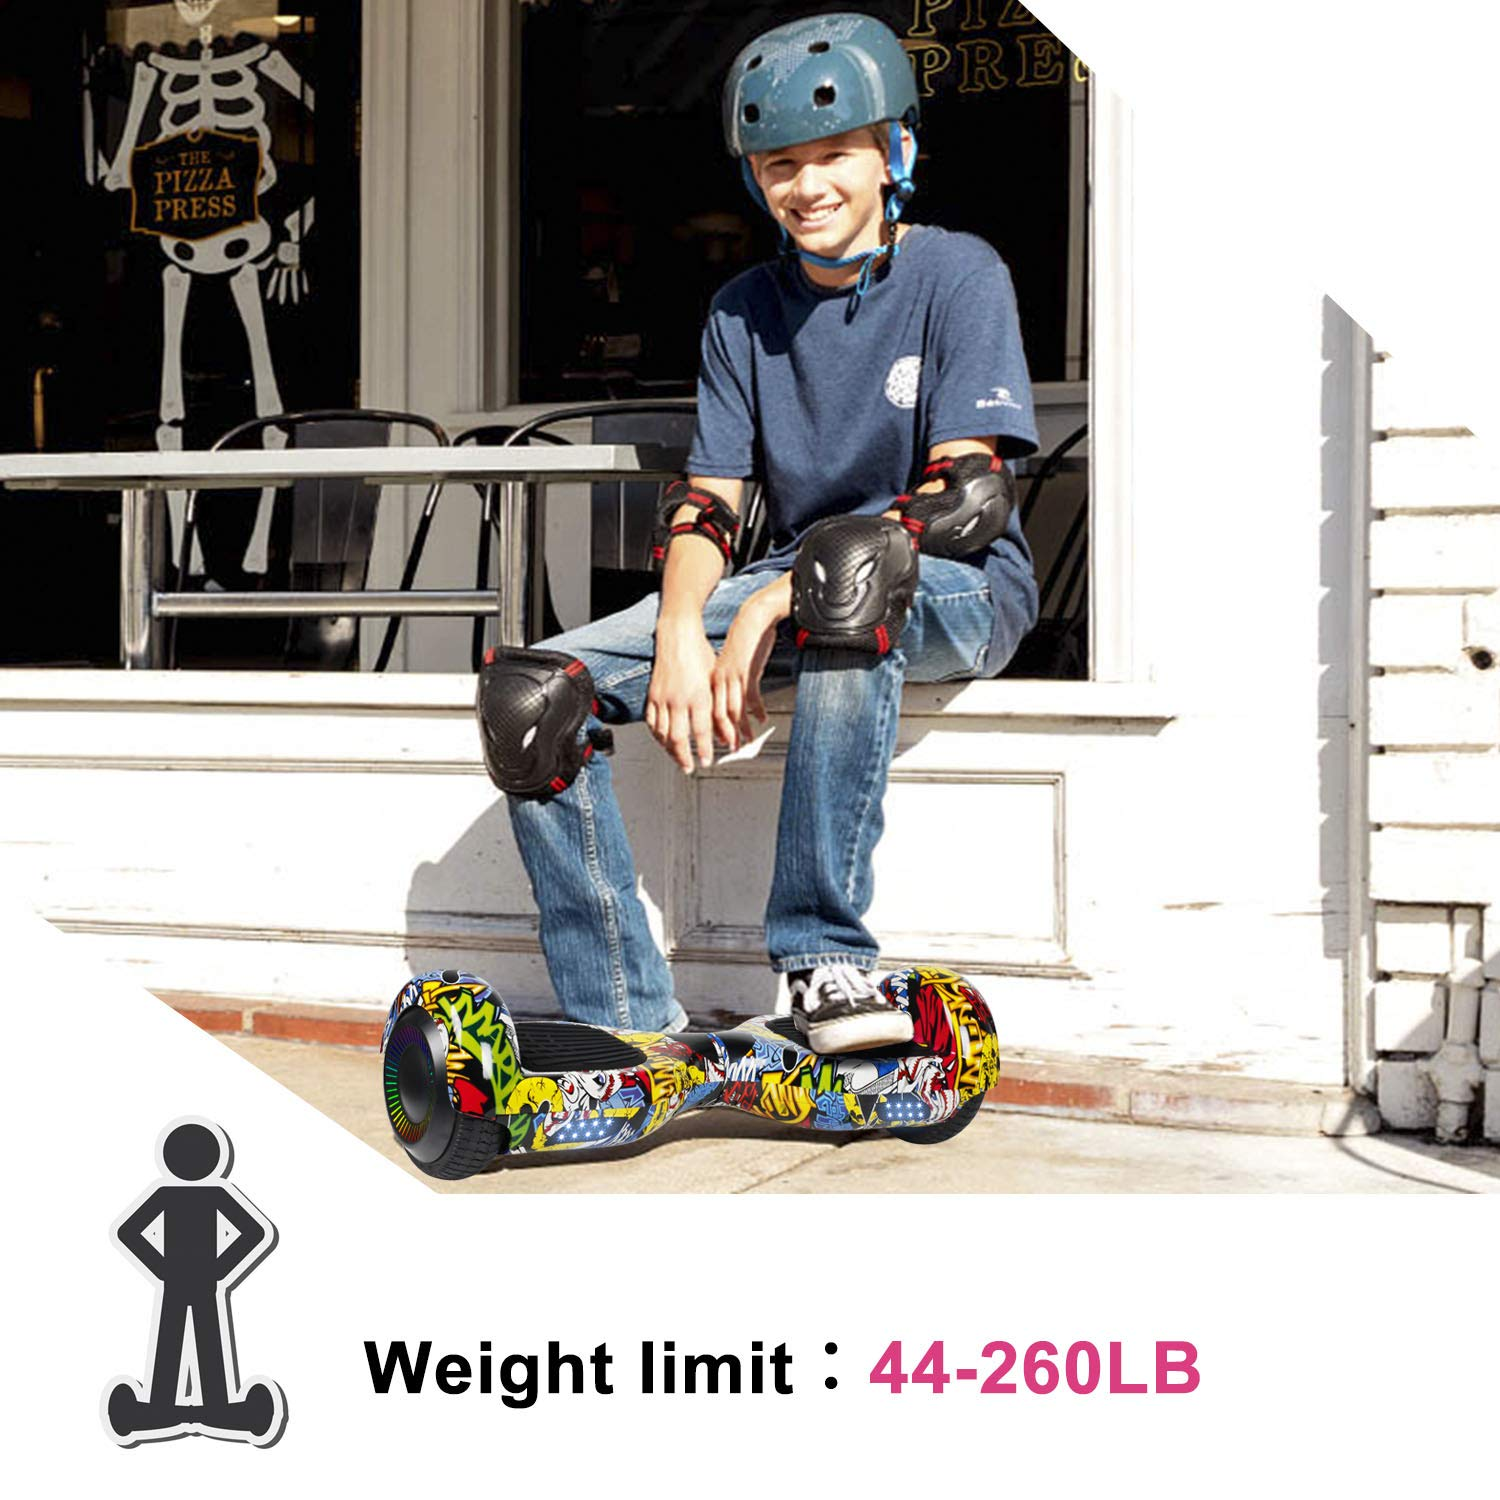 SISIGAD Hoverboard Self Balancing Scooter 6.5'' Two-Wheel Self Balancing Hoverboard with LED Lights Electric Scooter for Adult Kids Gift UL 2272 Certified Fun Edition - Graffiti by SISIGAD (Image #6)